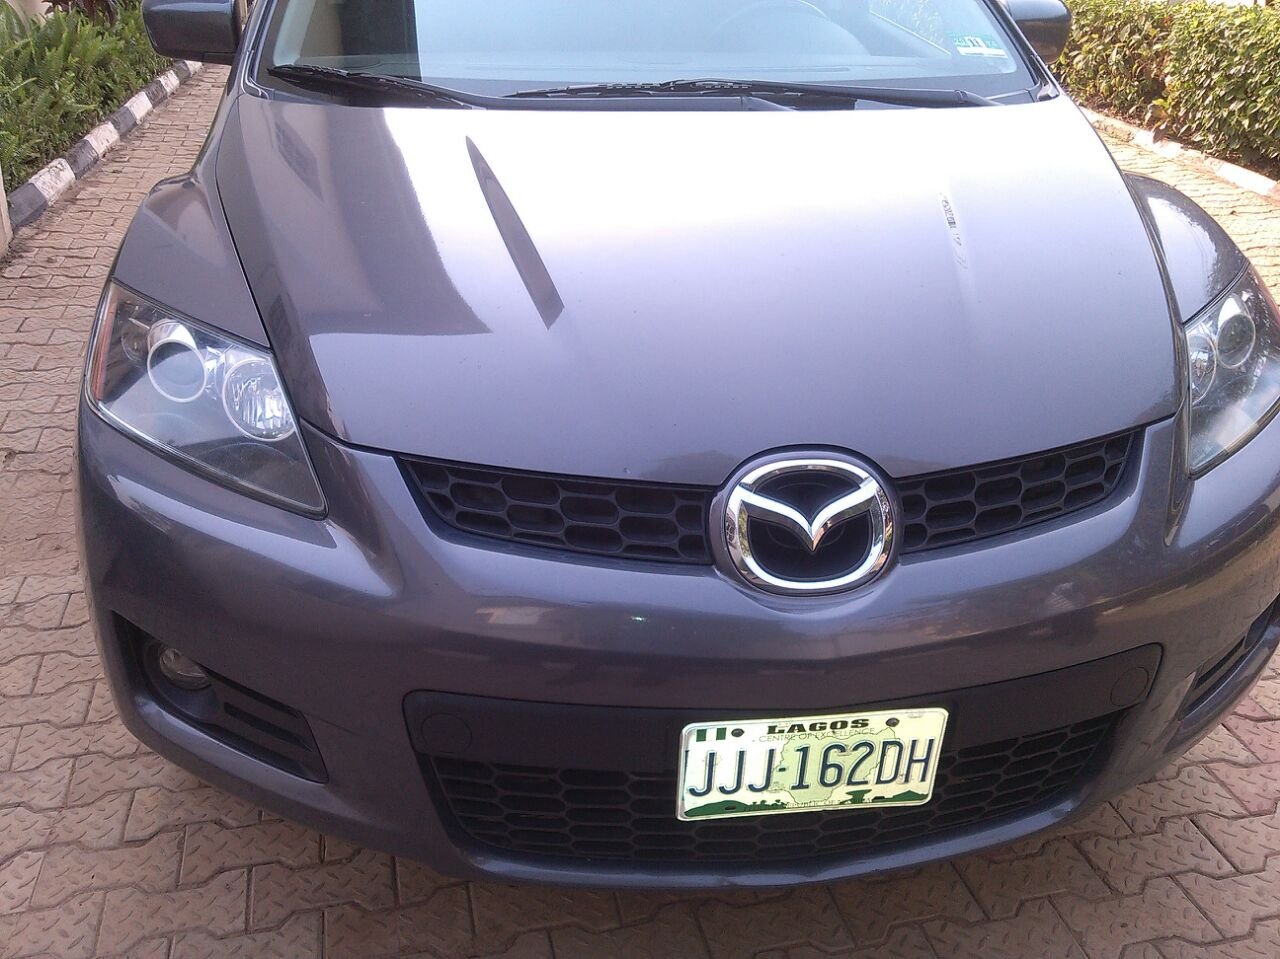 2007 turbo charged mazda cx7 awd sport suv autos nigeria. Black Bedroom Furniture Sets. Home Design Ideas